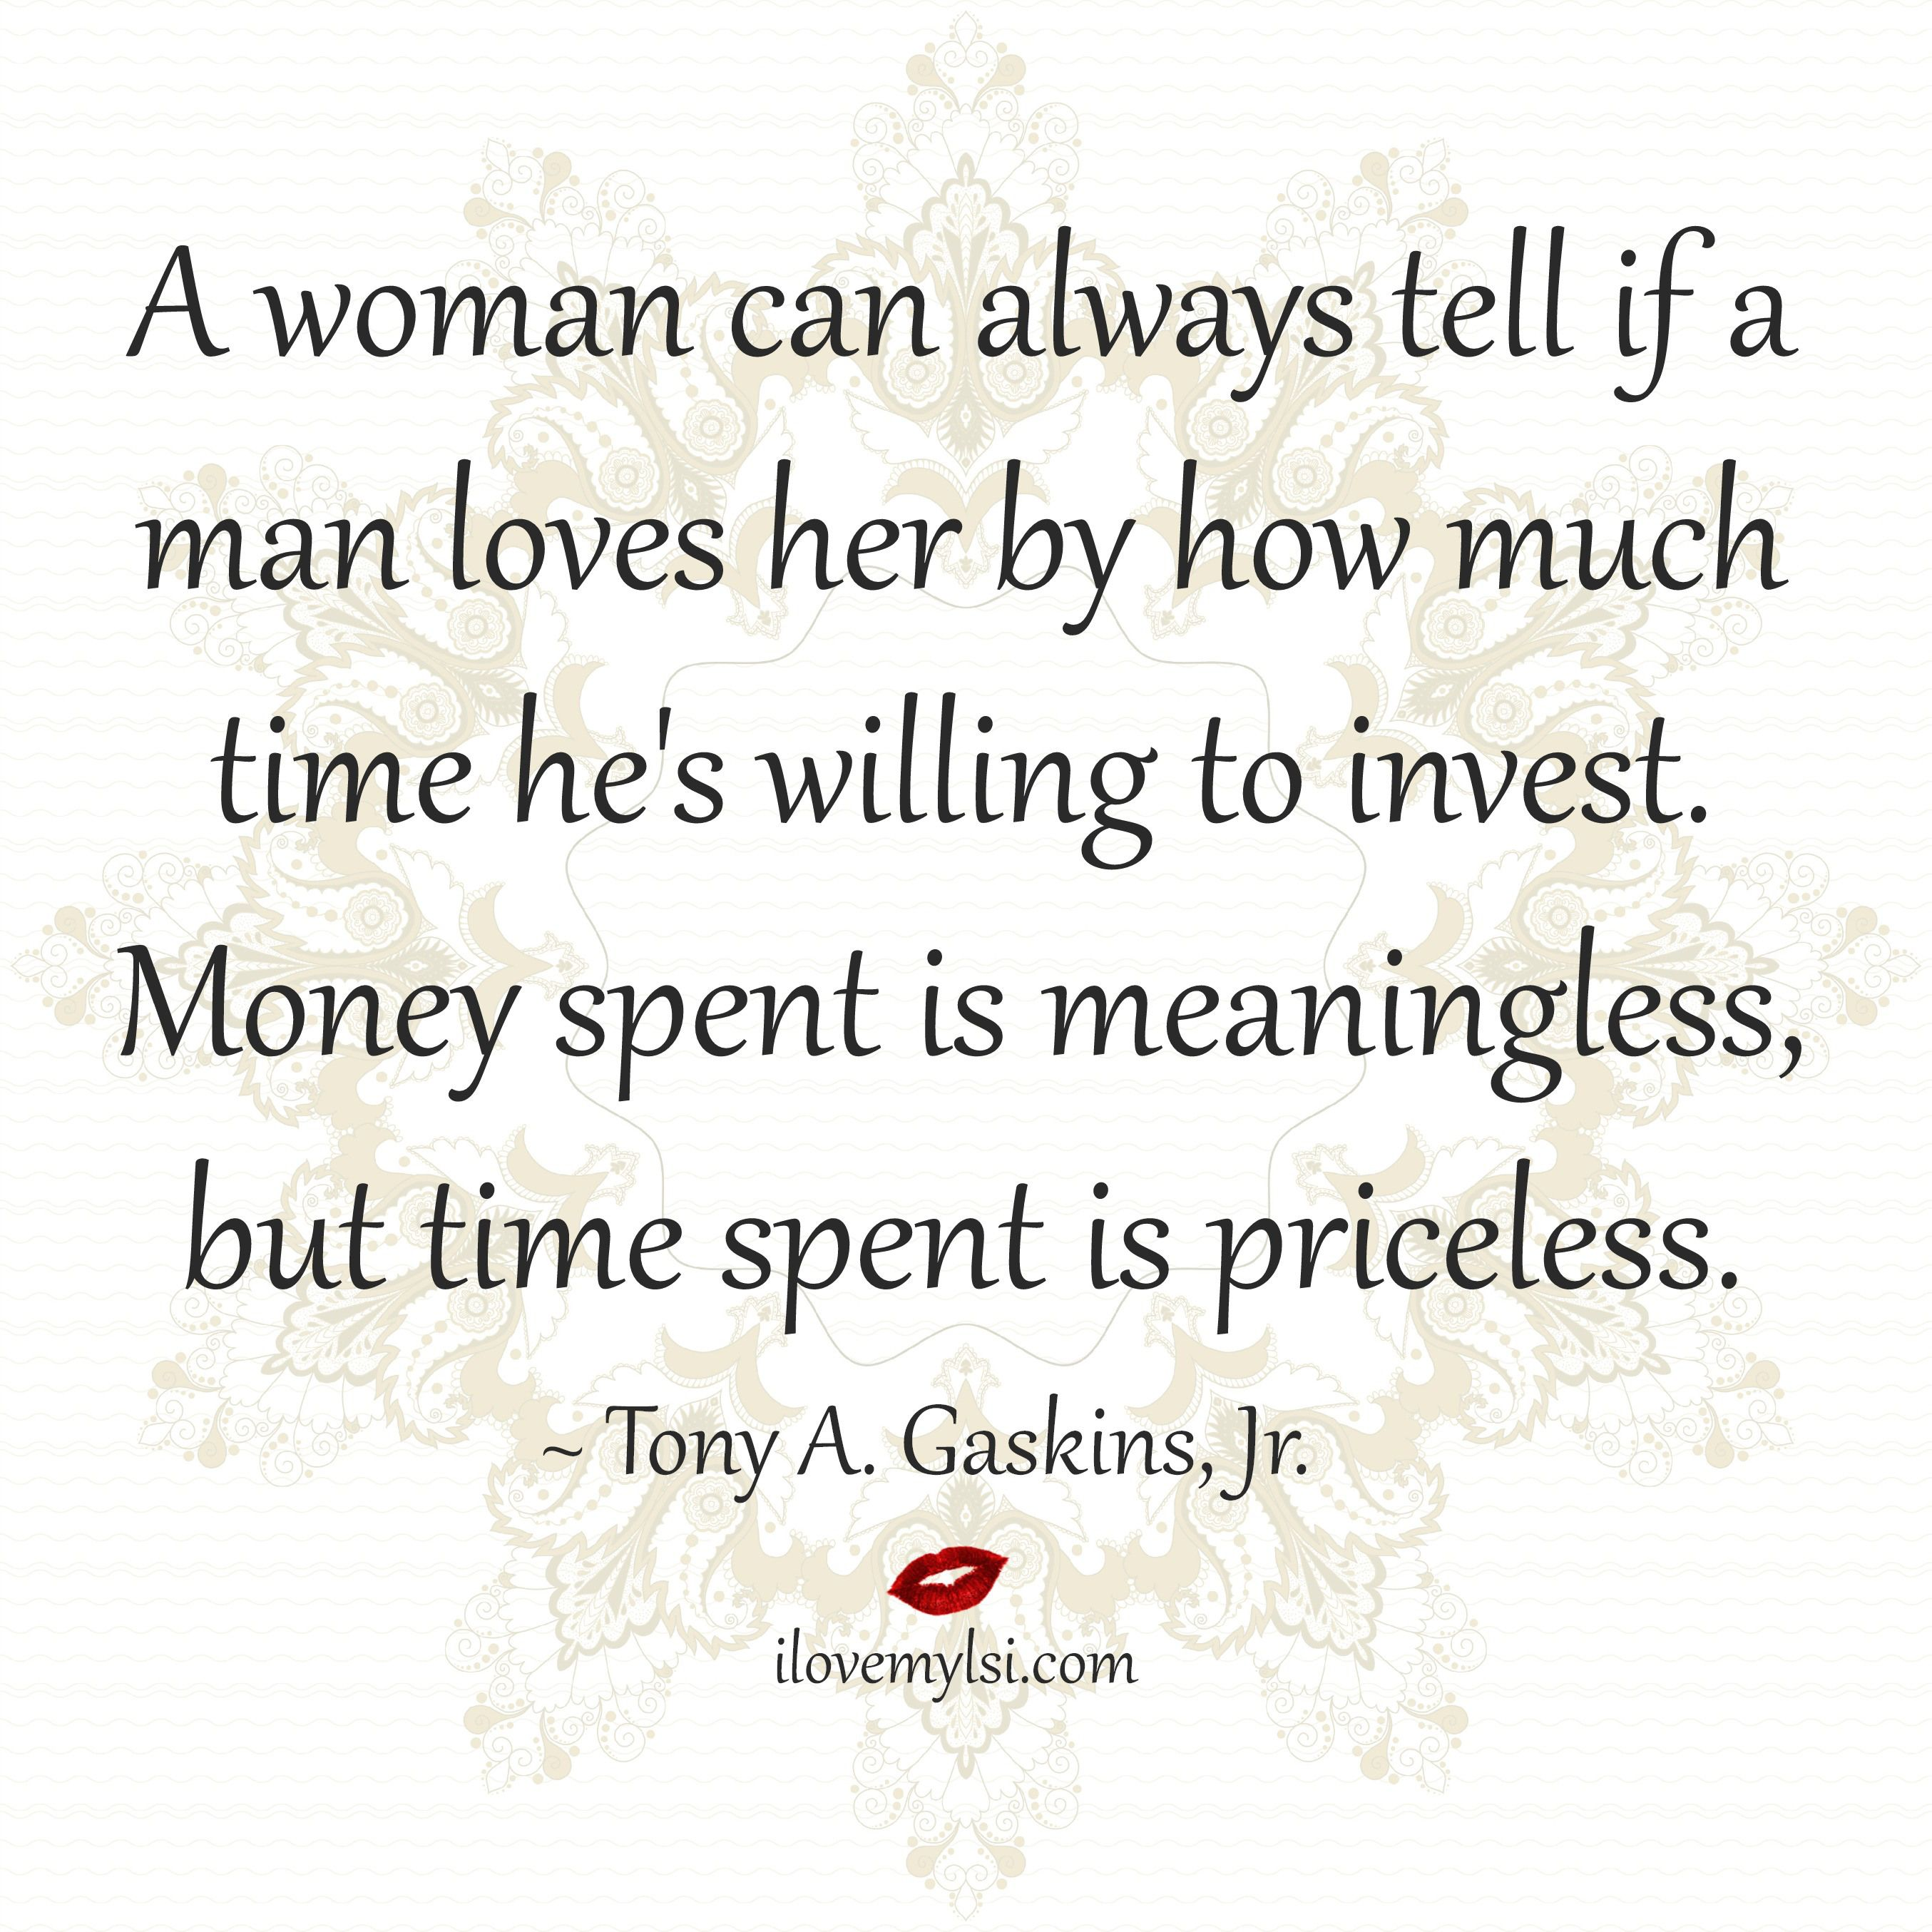 A woman can always tell if a man loves her Small ThingsLovely ThingsInspirational QuotesLove QuotesRomantic QuotesMy